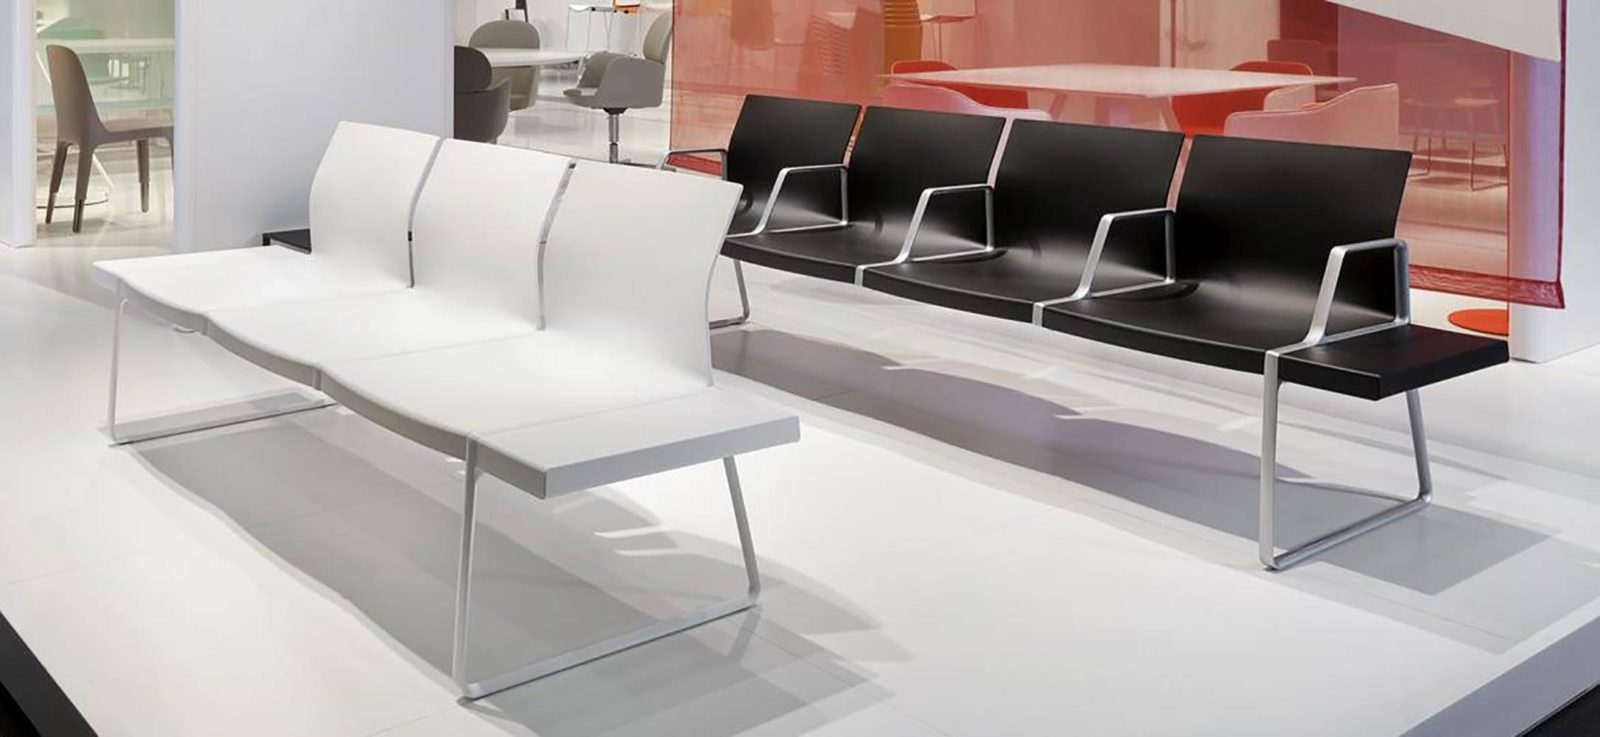 Plural bench balmoral contracts contract furniture for Couch plural